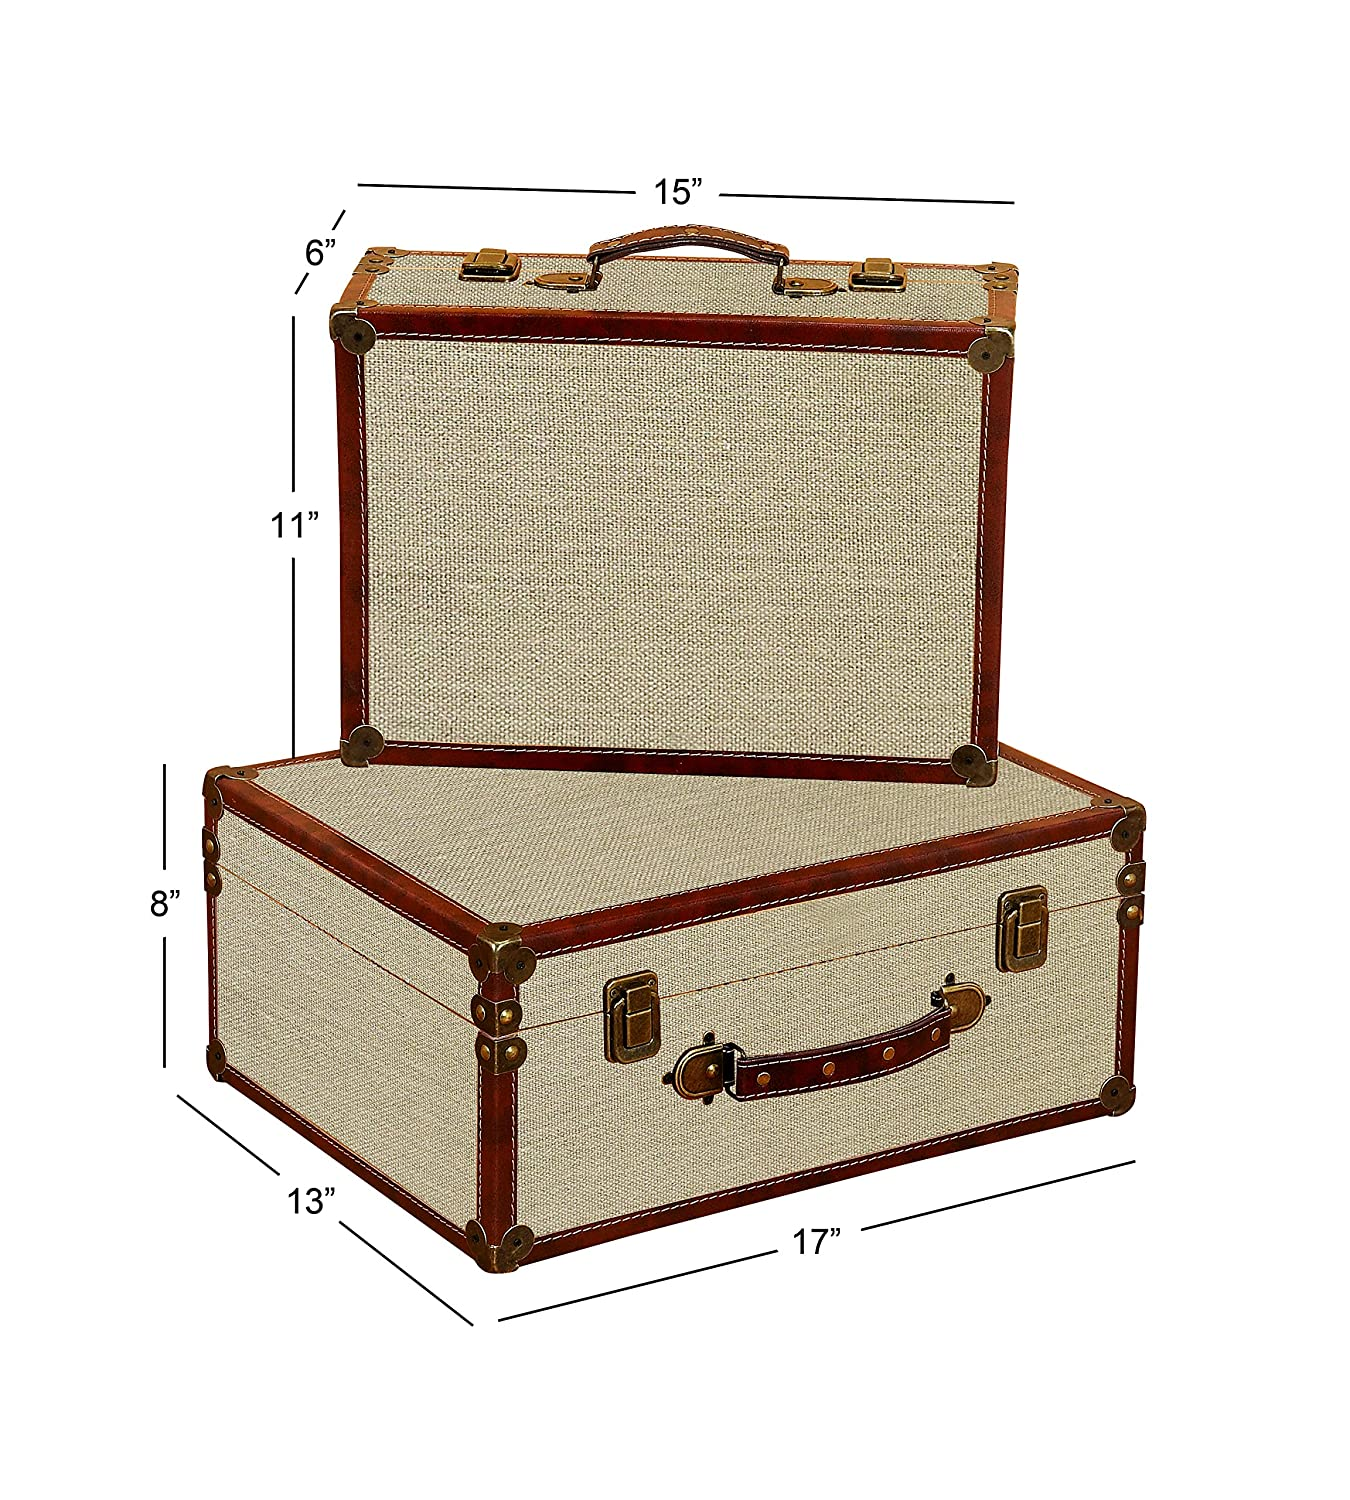 Deco 79 Wood Burlap Box 17 by 15-Inch Set of 2 Deco Seventy-Nine 62240